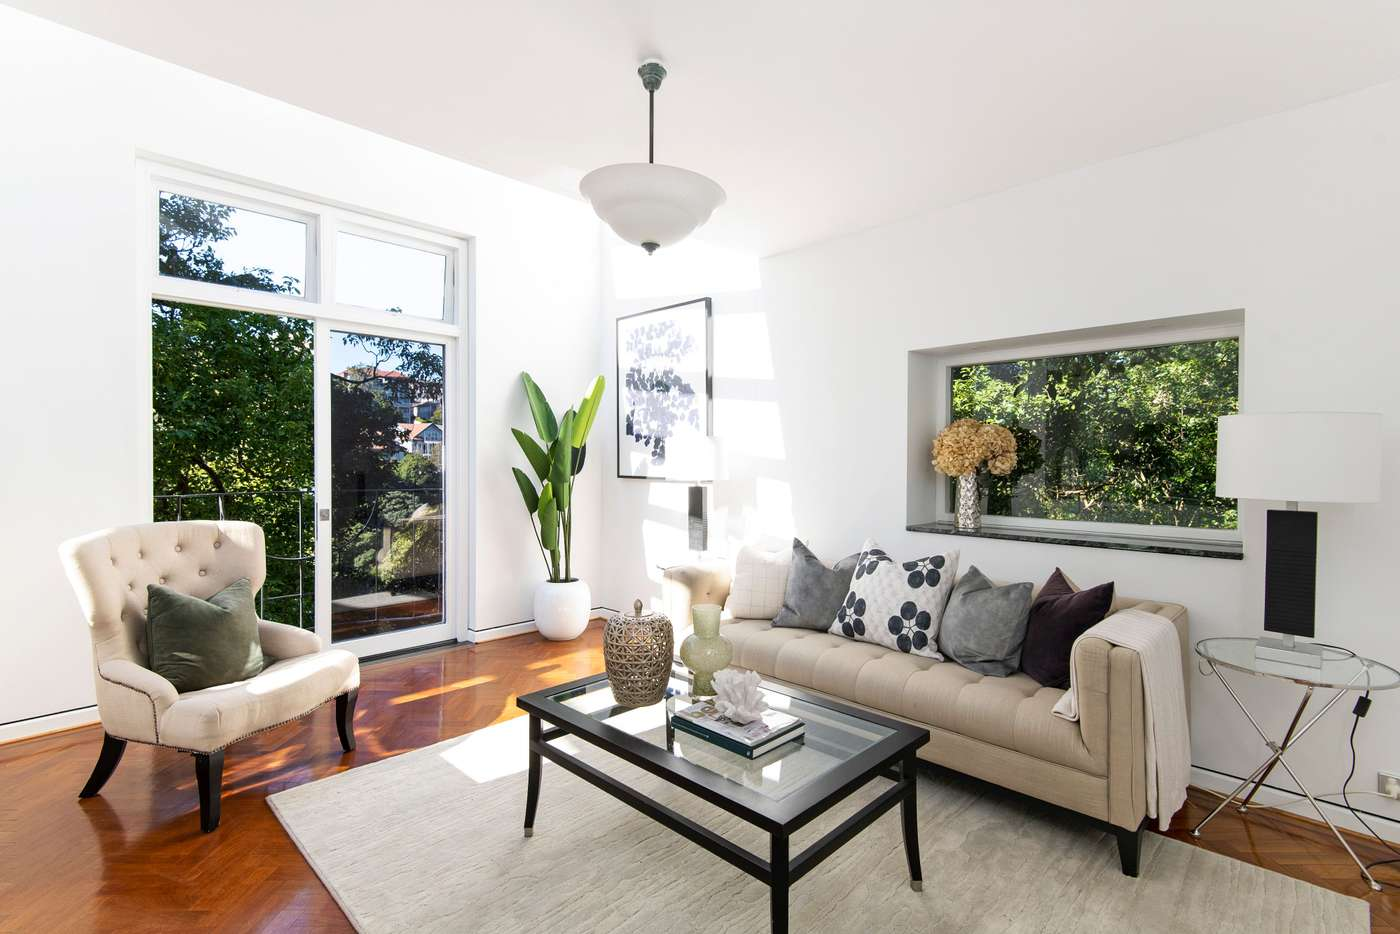 Fifth view of Homely house listing, 16 Harnett Avenue, Mosman NSW 2088